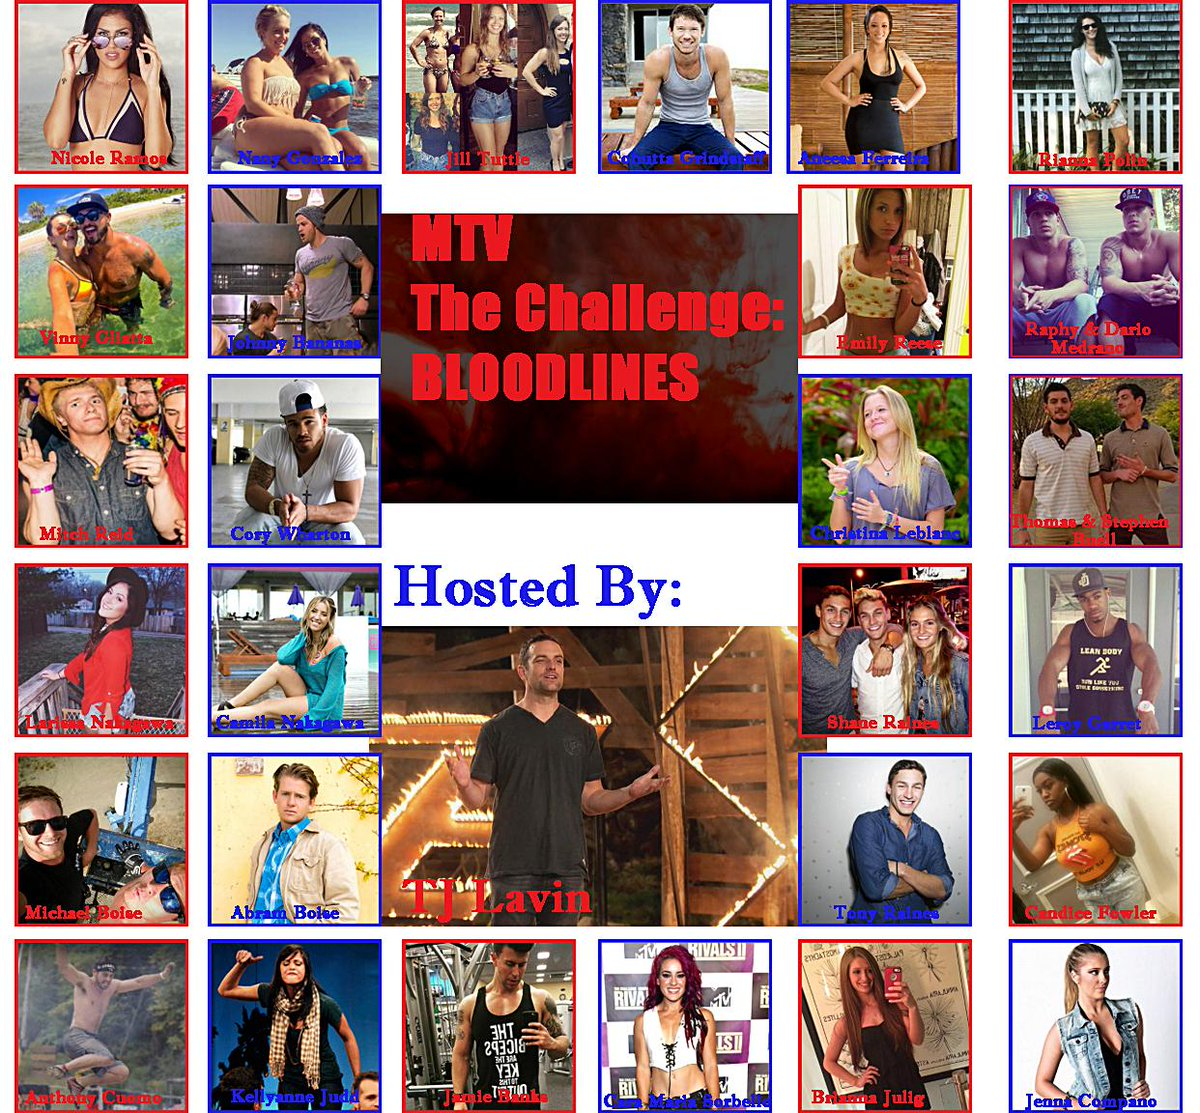 Sorry for any mistakes in advance but here is the official cast for the 27th season of the Challenge! http://t.co/QVx8c1NqaC